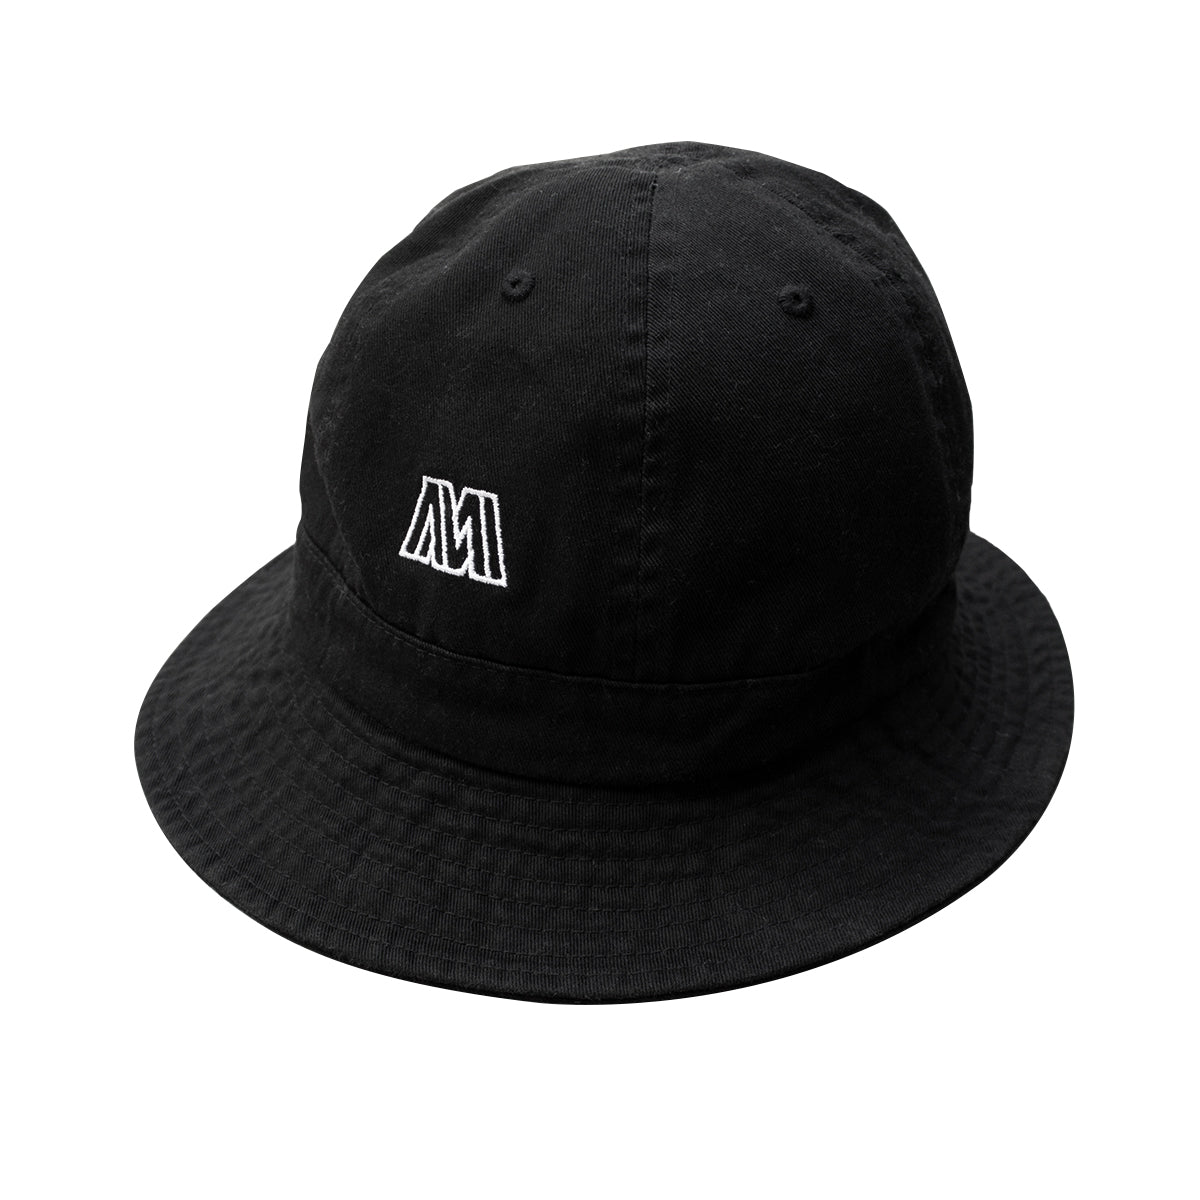 Warped Bucket Hat - Black